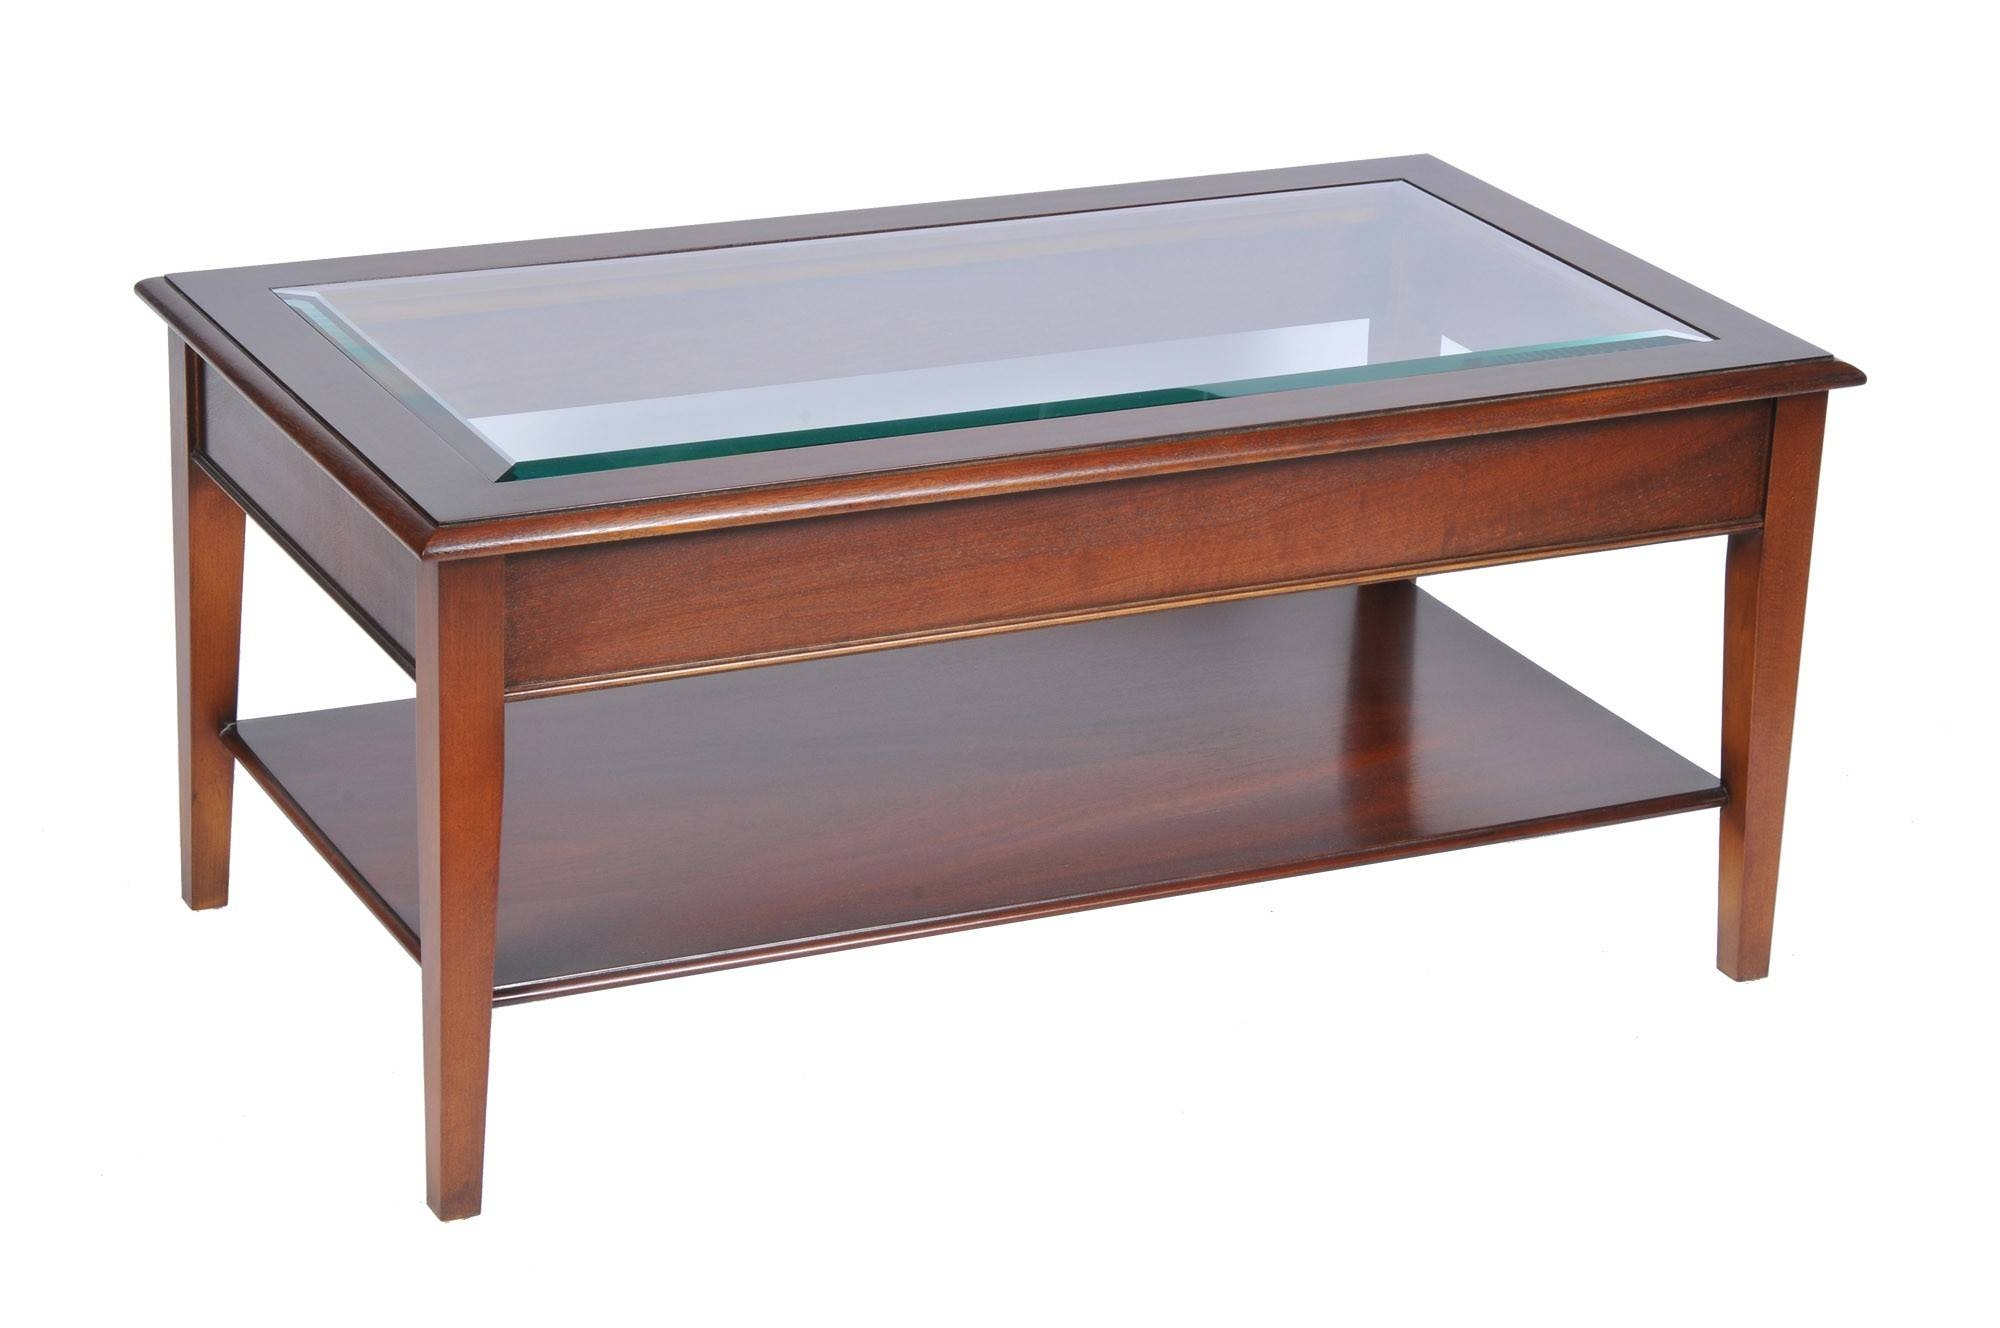 Bradley Mahogany 875 Glass Top Coffee Table | Tr Hayes - Furniture with Mahogany Coffee Tables (Image 4 of 30)